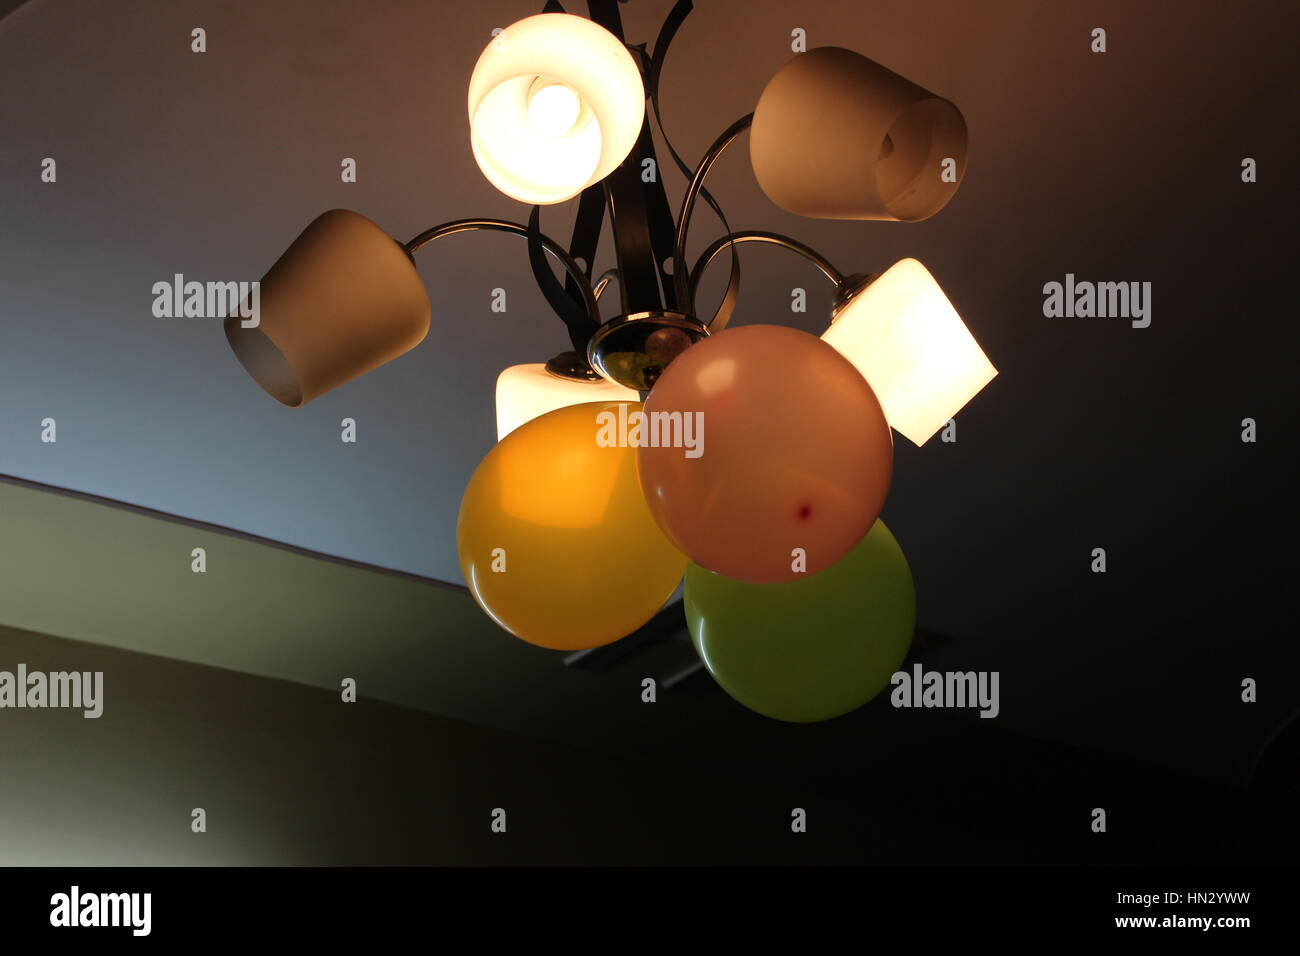 Chandelier with balloons and three illuminated bulbs - Stock Image